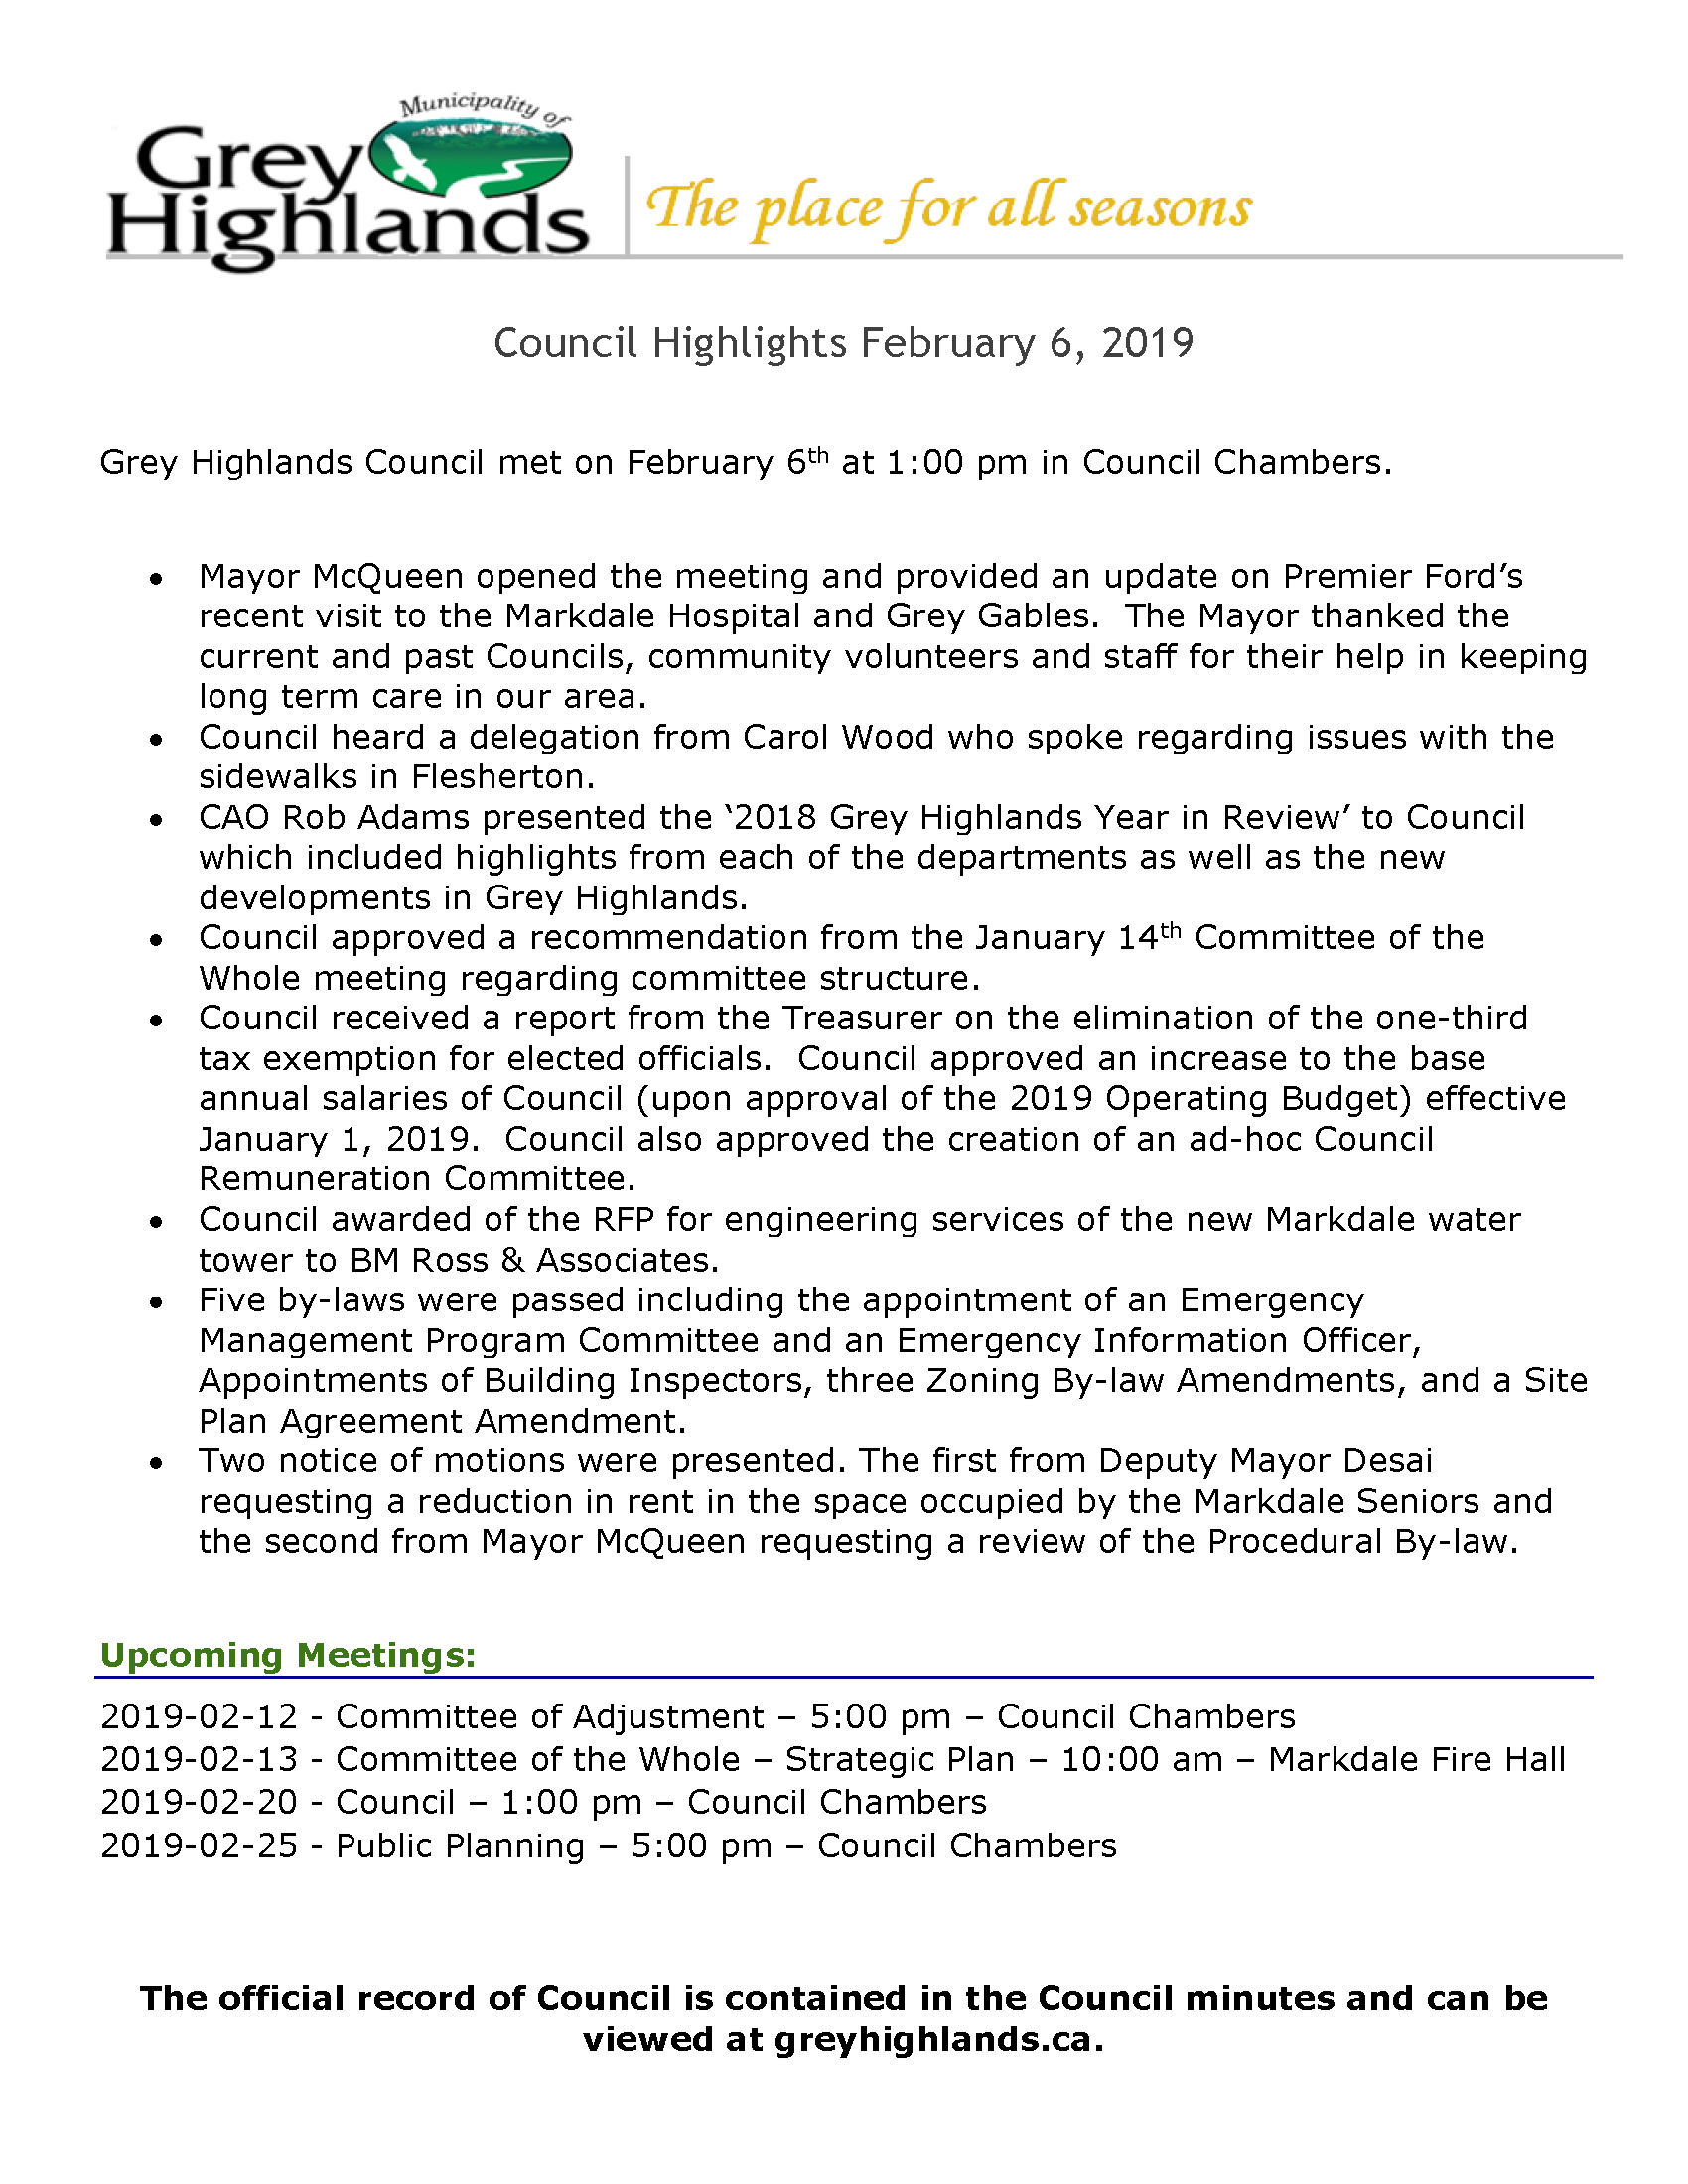 Council Highlights - February 6, 2019